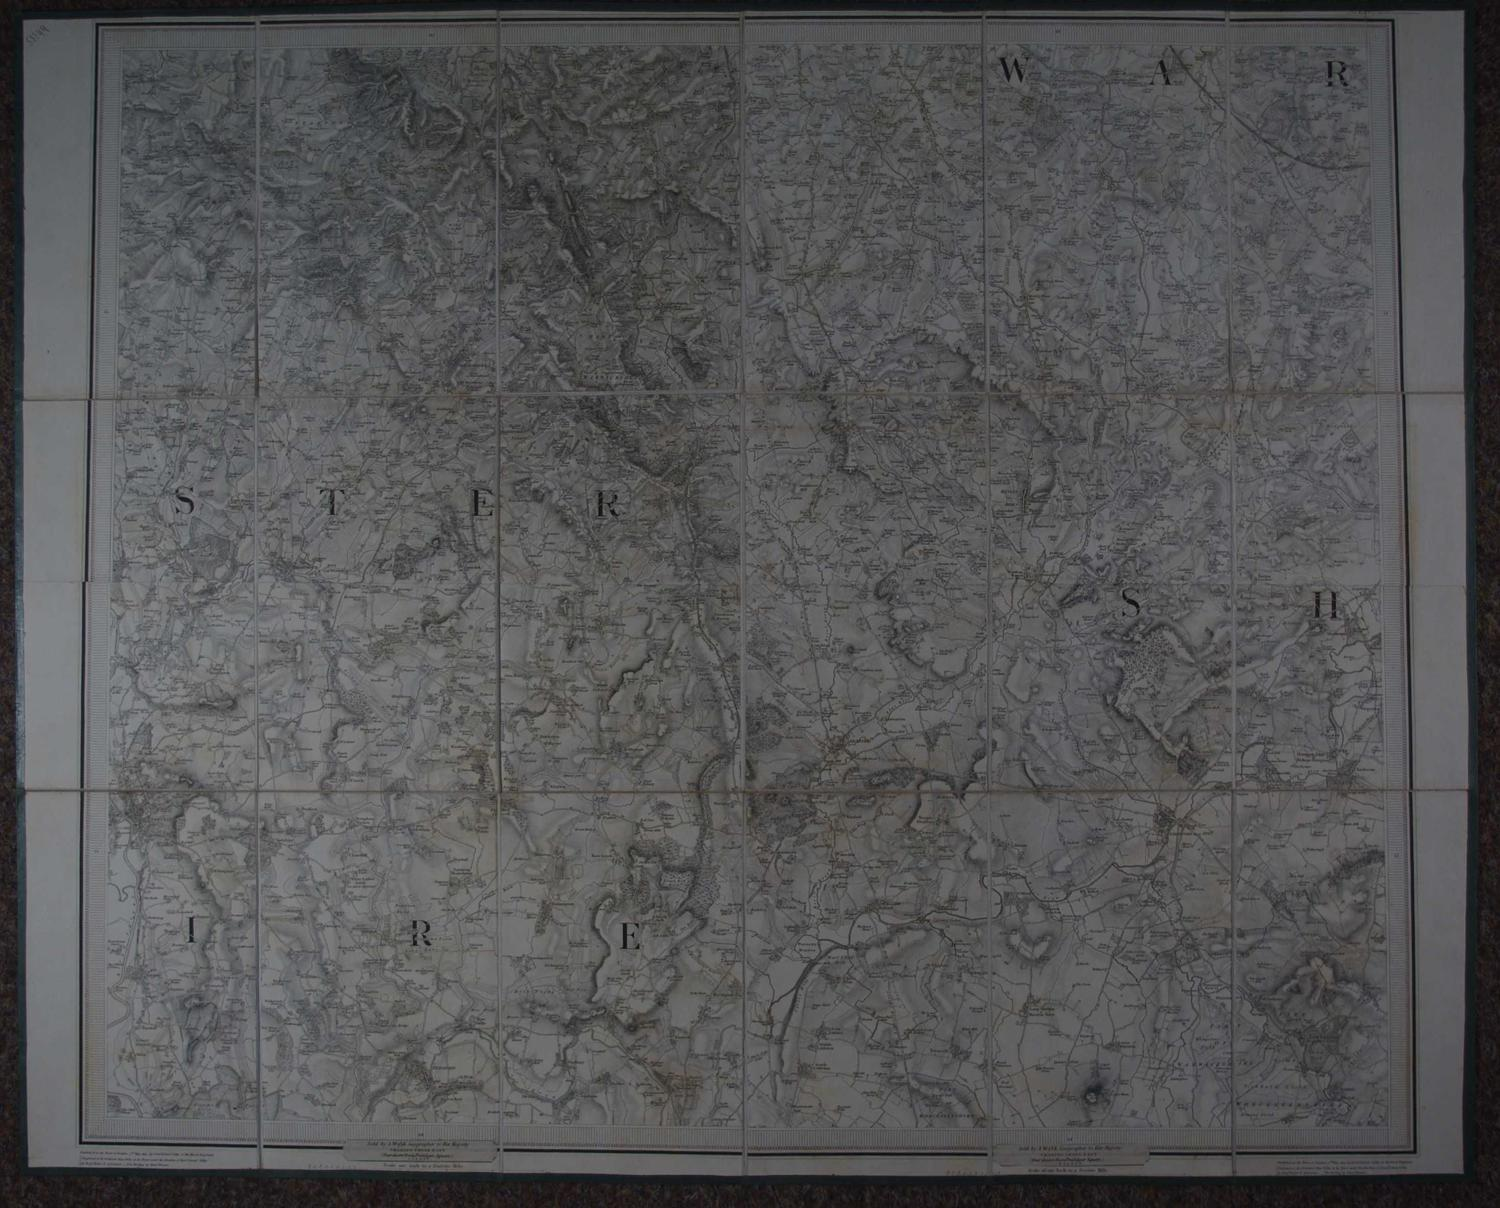 Map Sheet no LXXII by Ordnance Survey